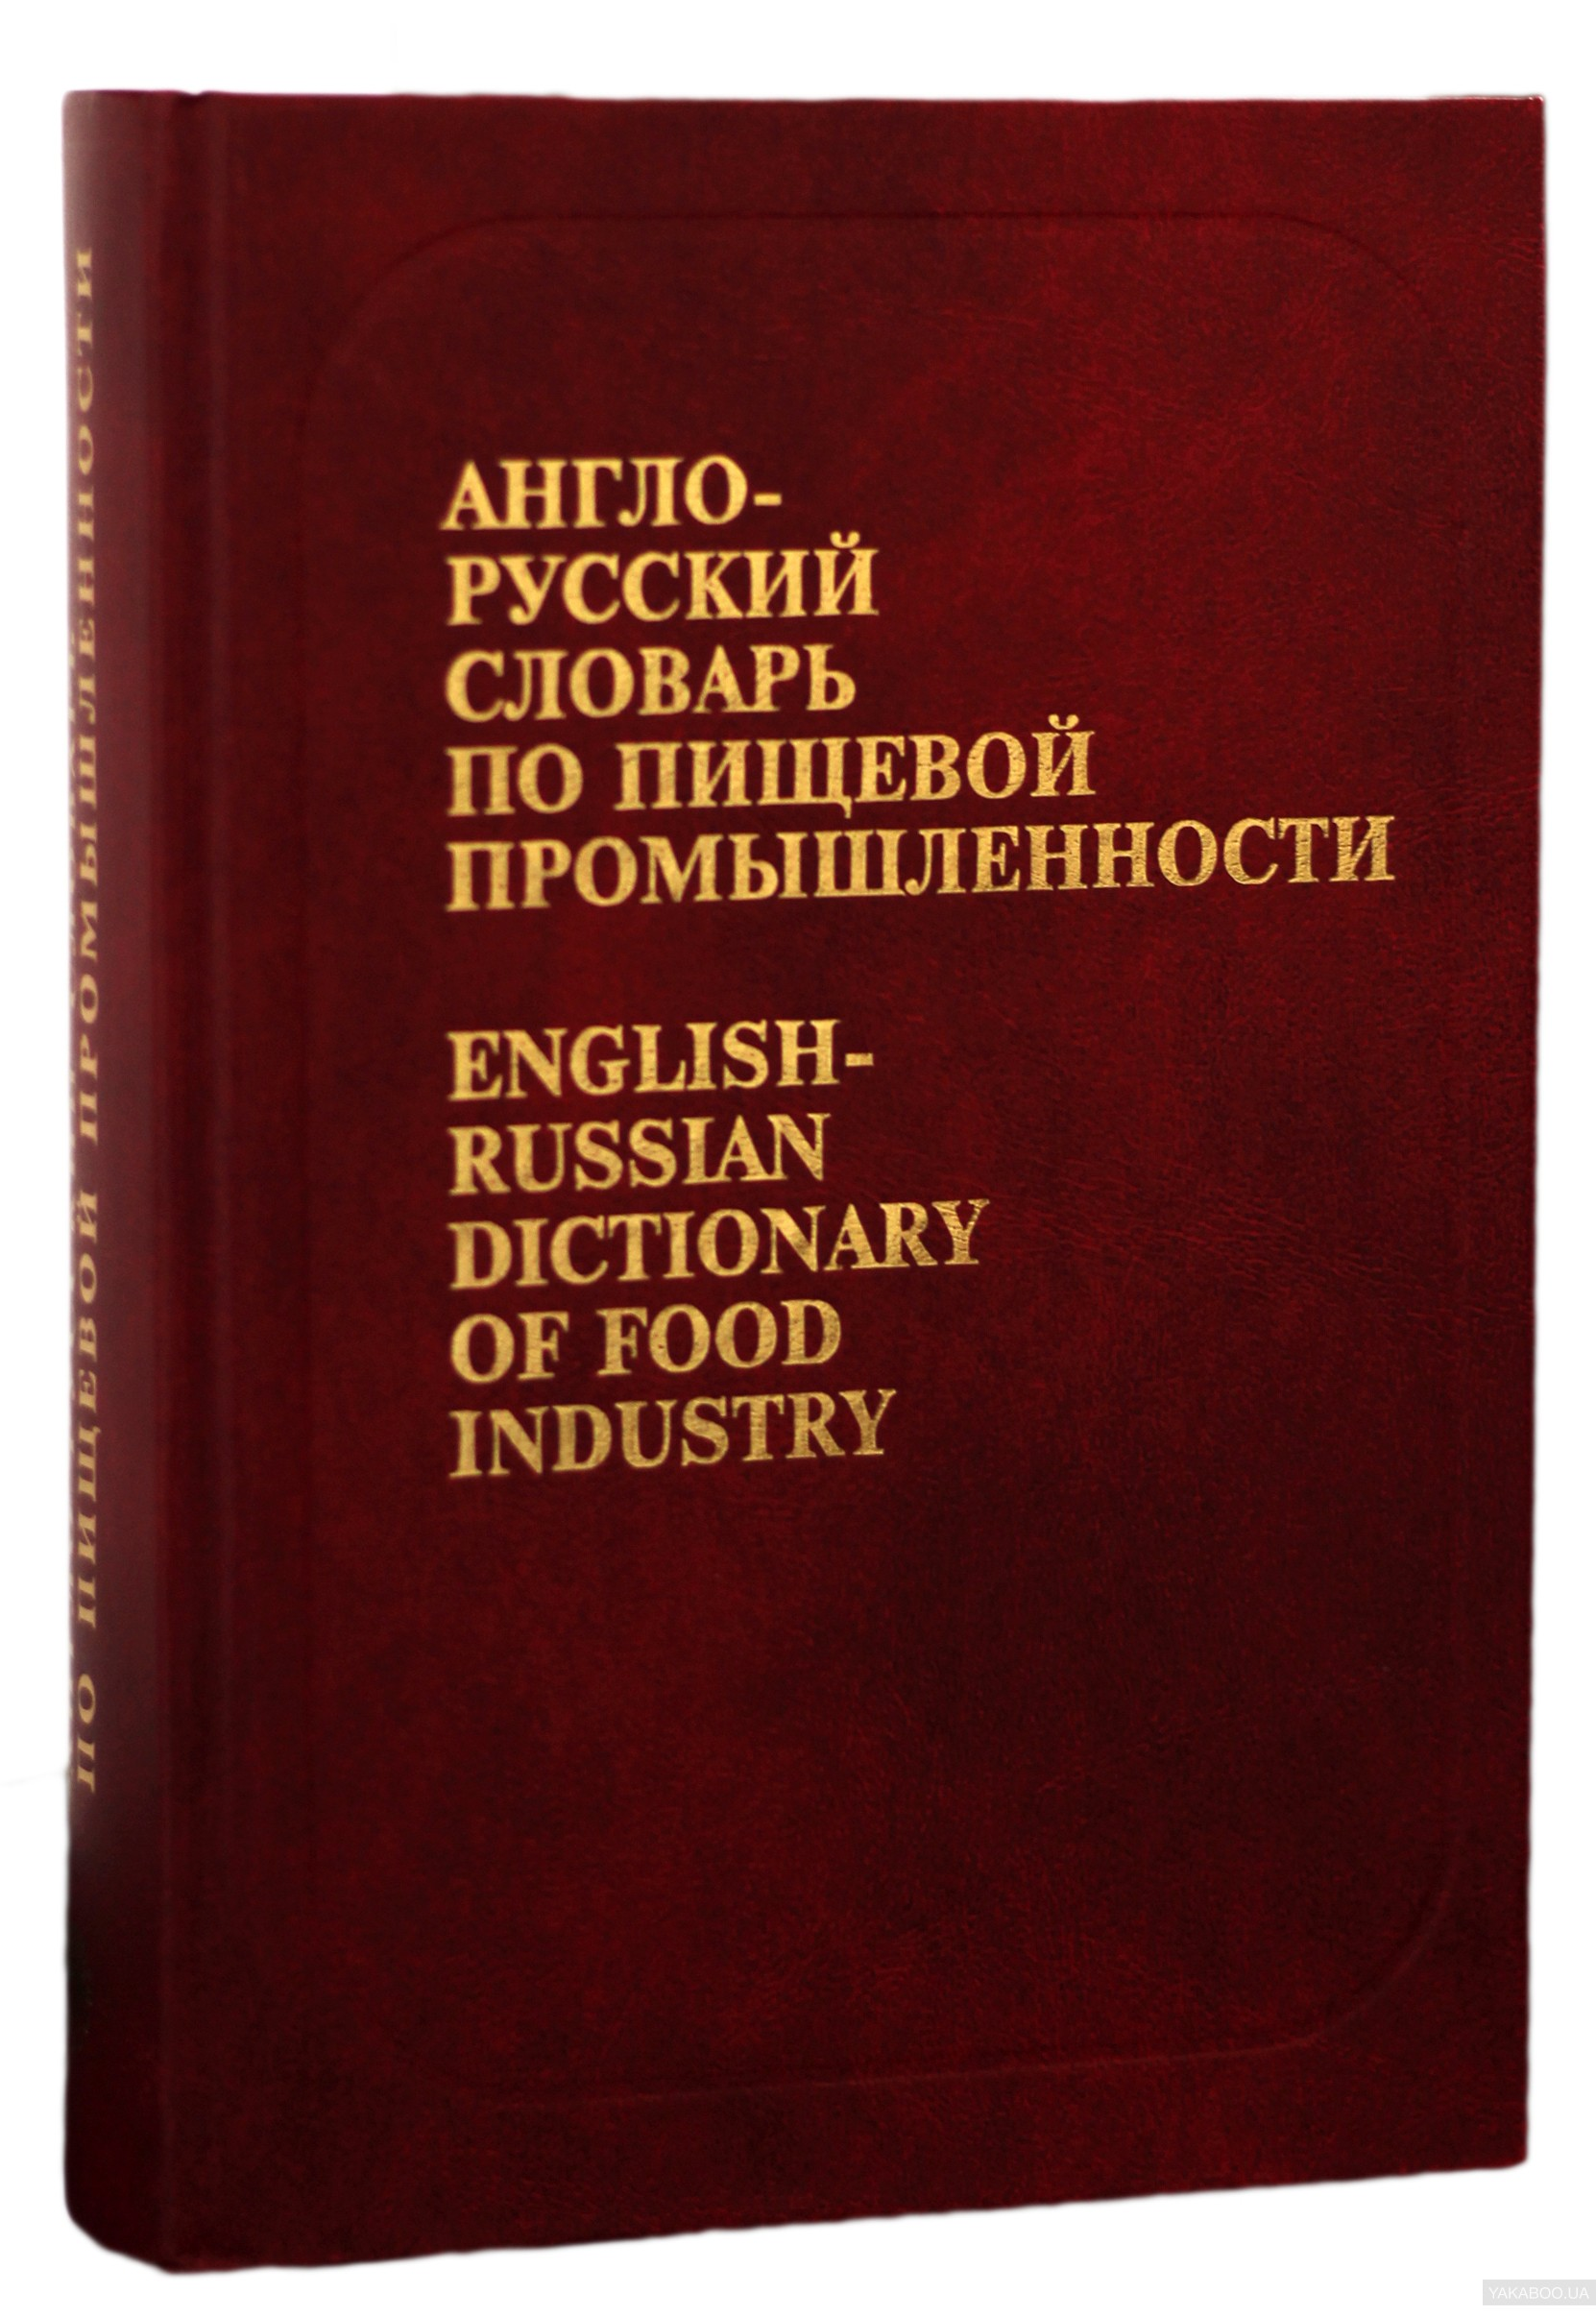 Англо-русский словарь по пищевой промышленности / English-Russian Dictionary of Food Industry